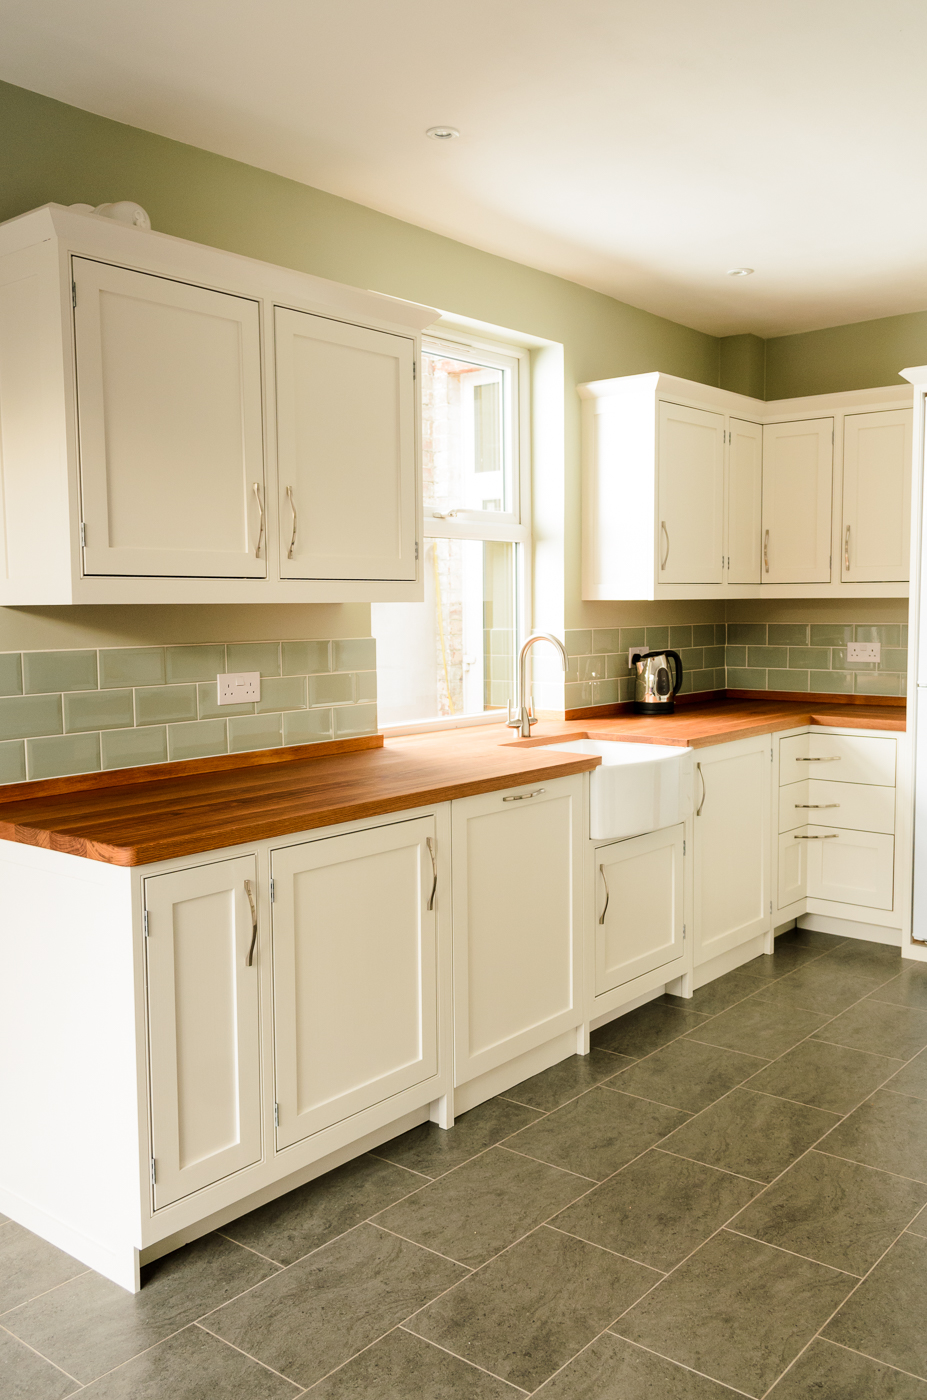 Rushworth Kitchen-Open Plan Design.jpg